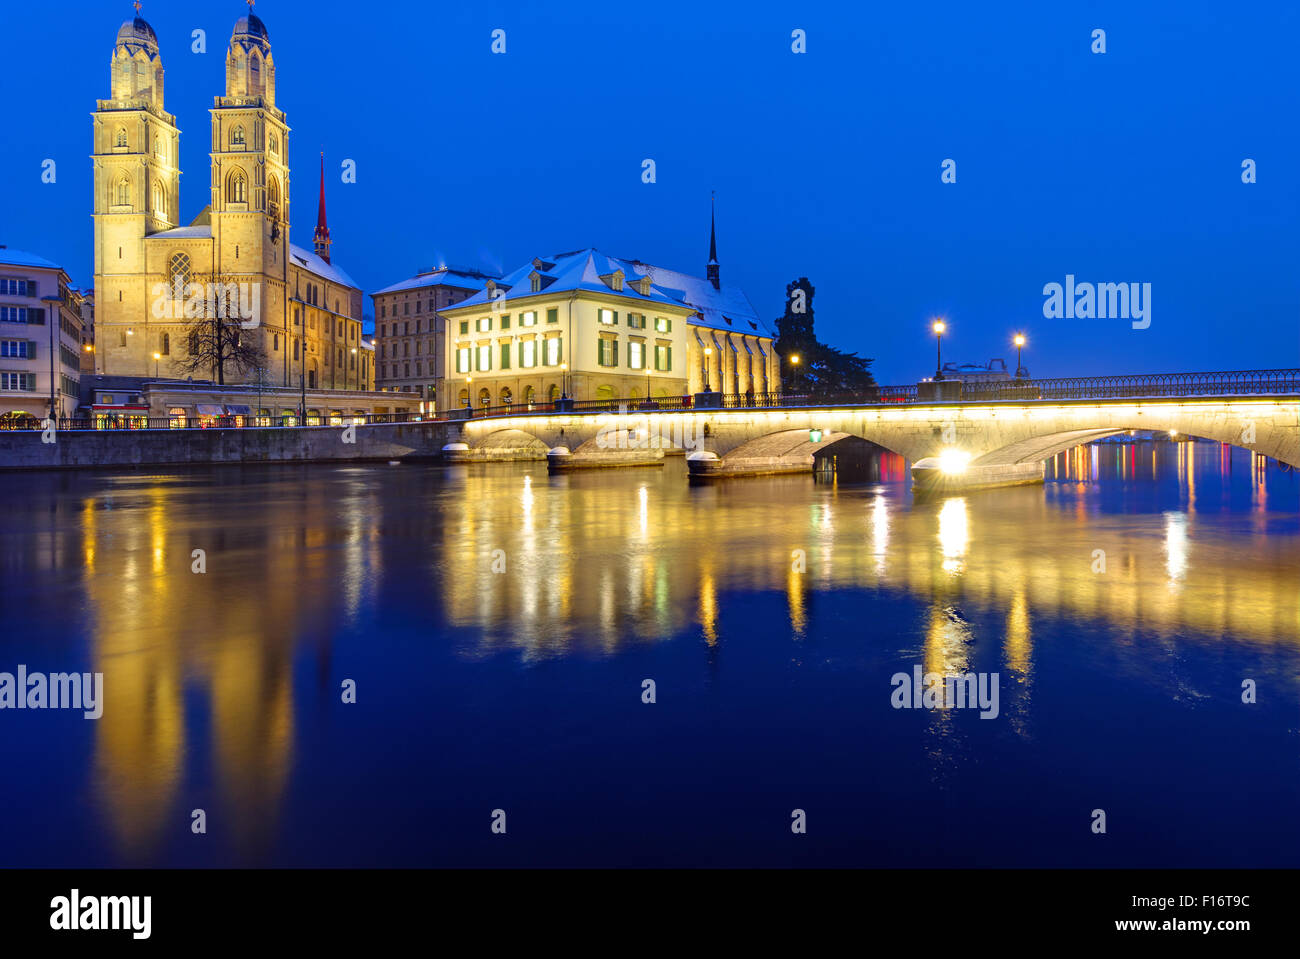 A bridge and the Minster in Zurich in winter at night Stock Photo